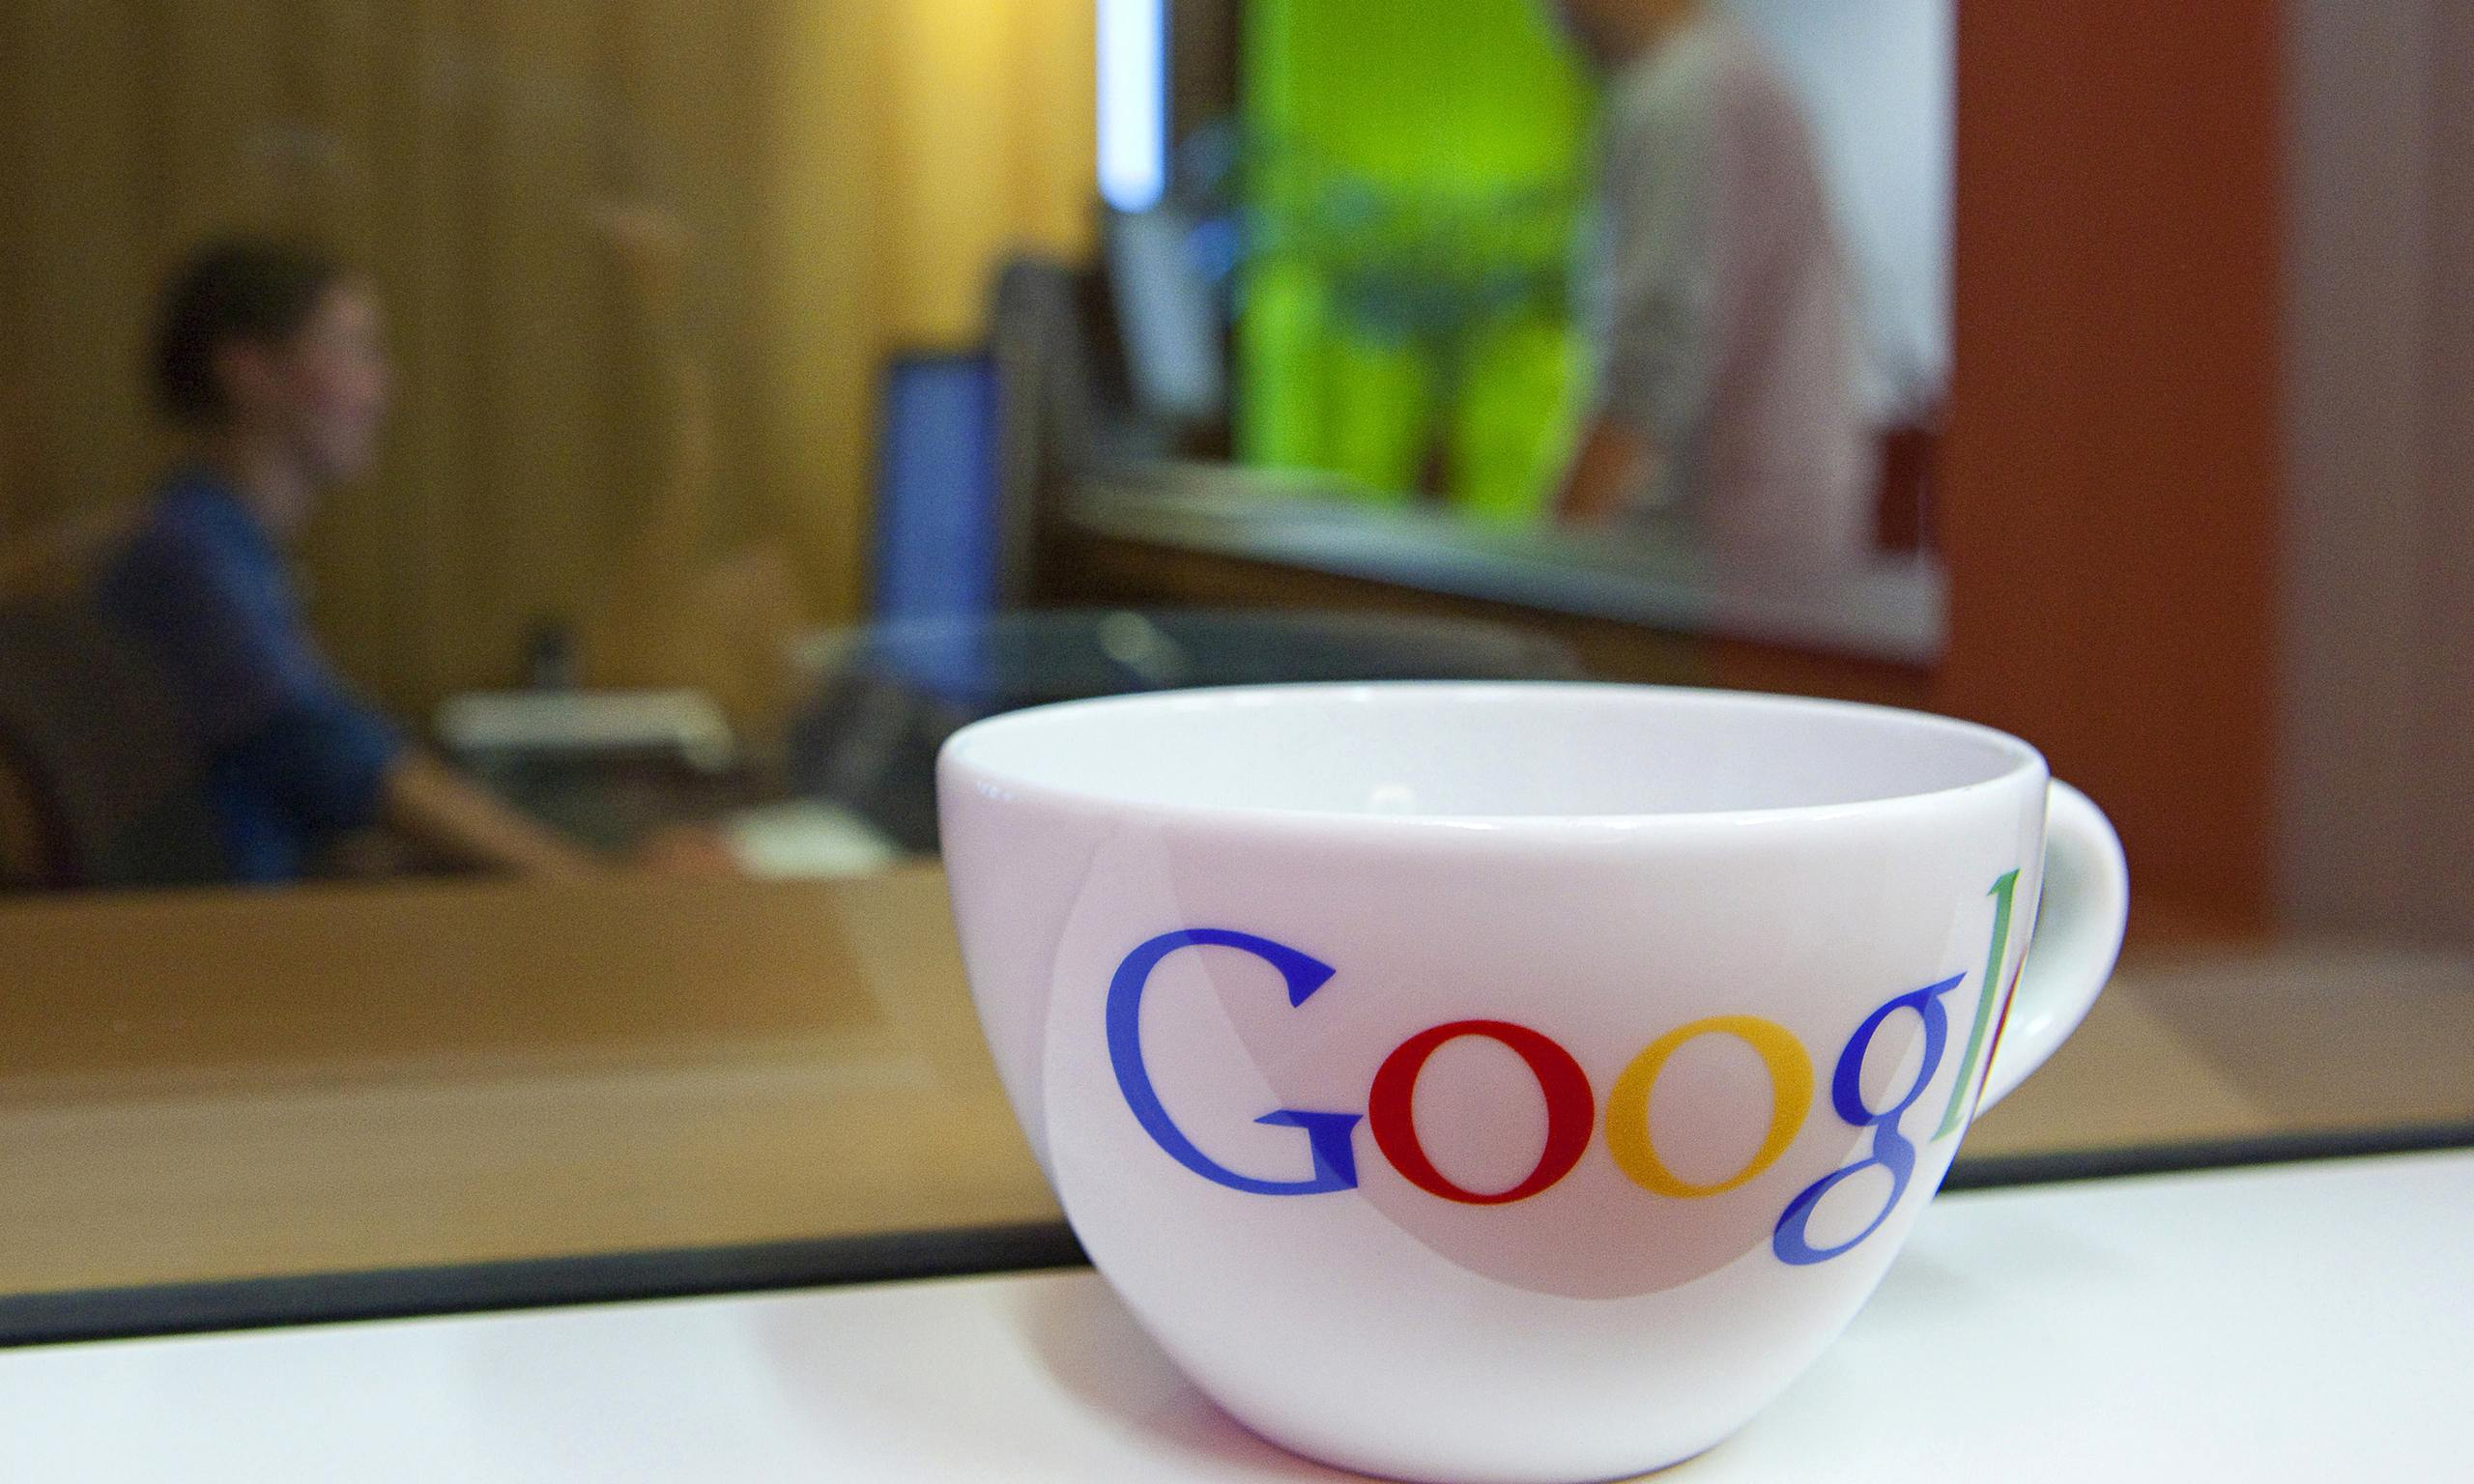 Info wars: why it's time for Google & Co to come clean